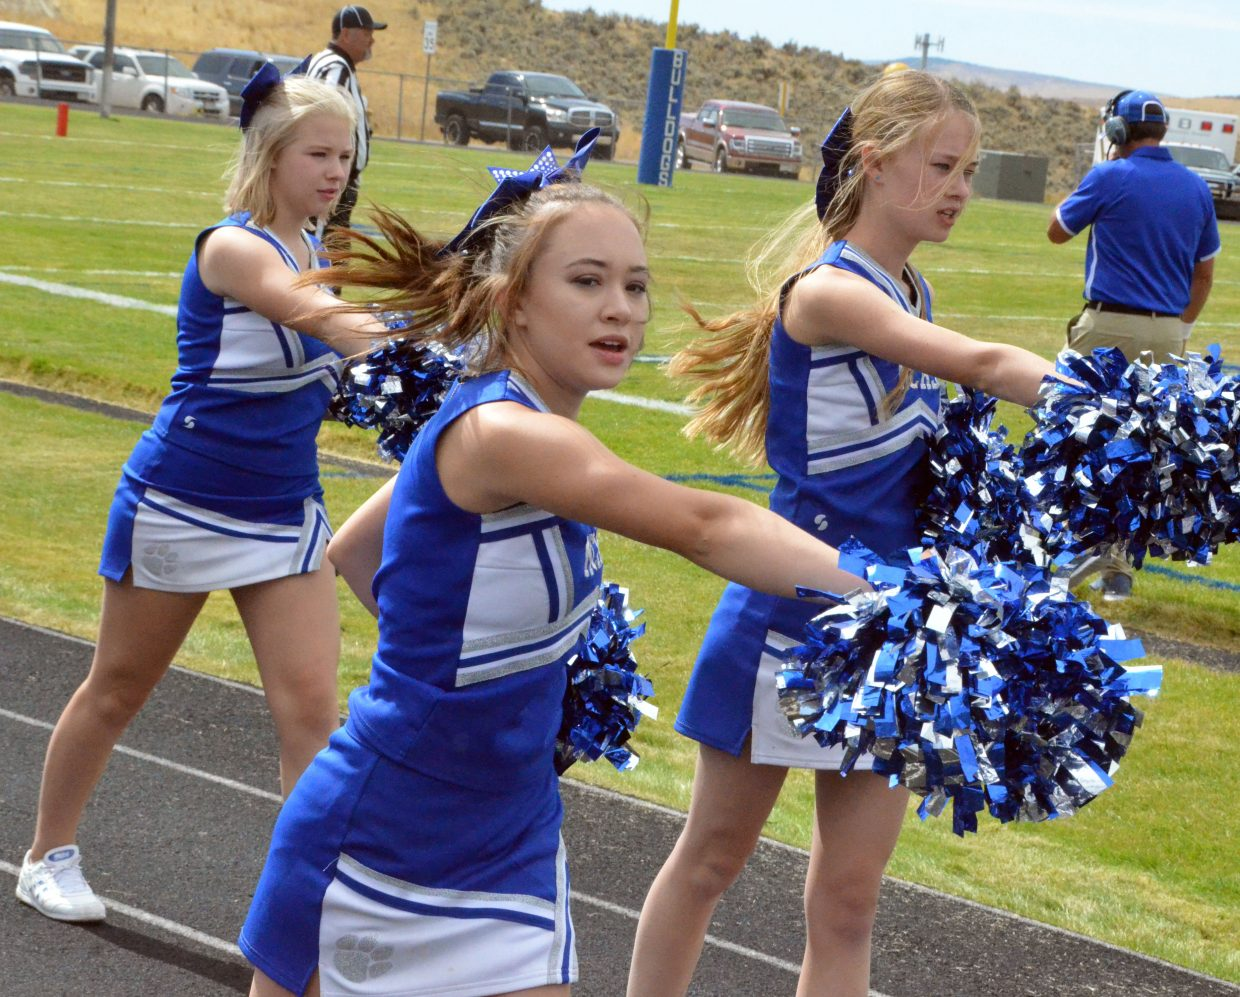 Moffat County High School cheerleaders get their routine going to start Saturday's Homecoming game.